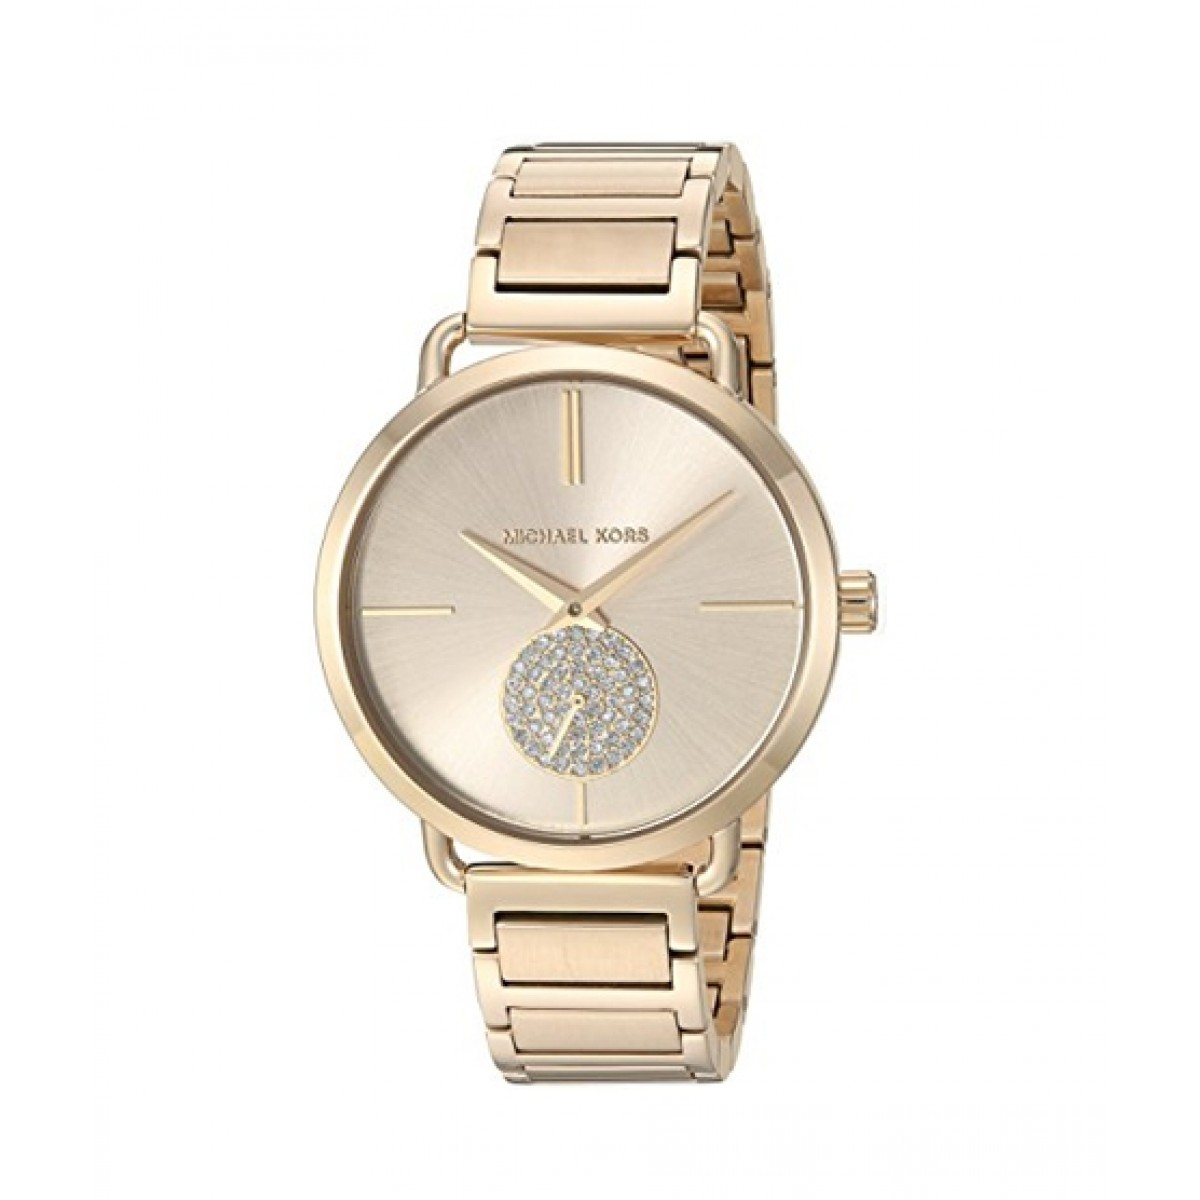 a21843e48e99 Michael Kors Portia Women s Watch Price in Pakistan